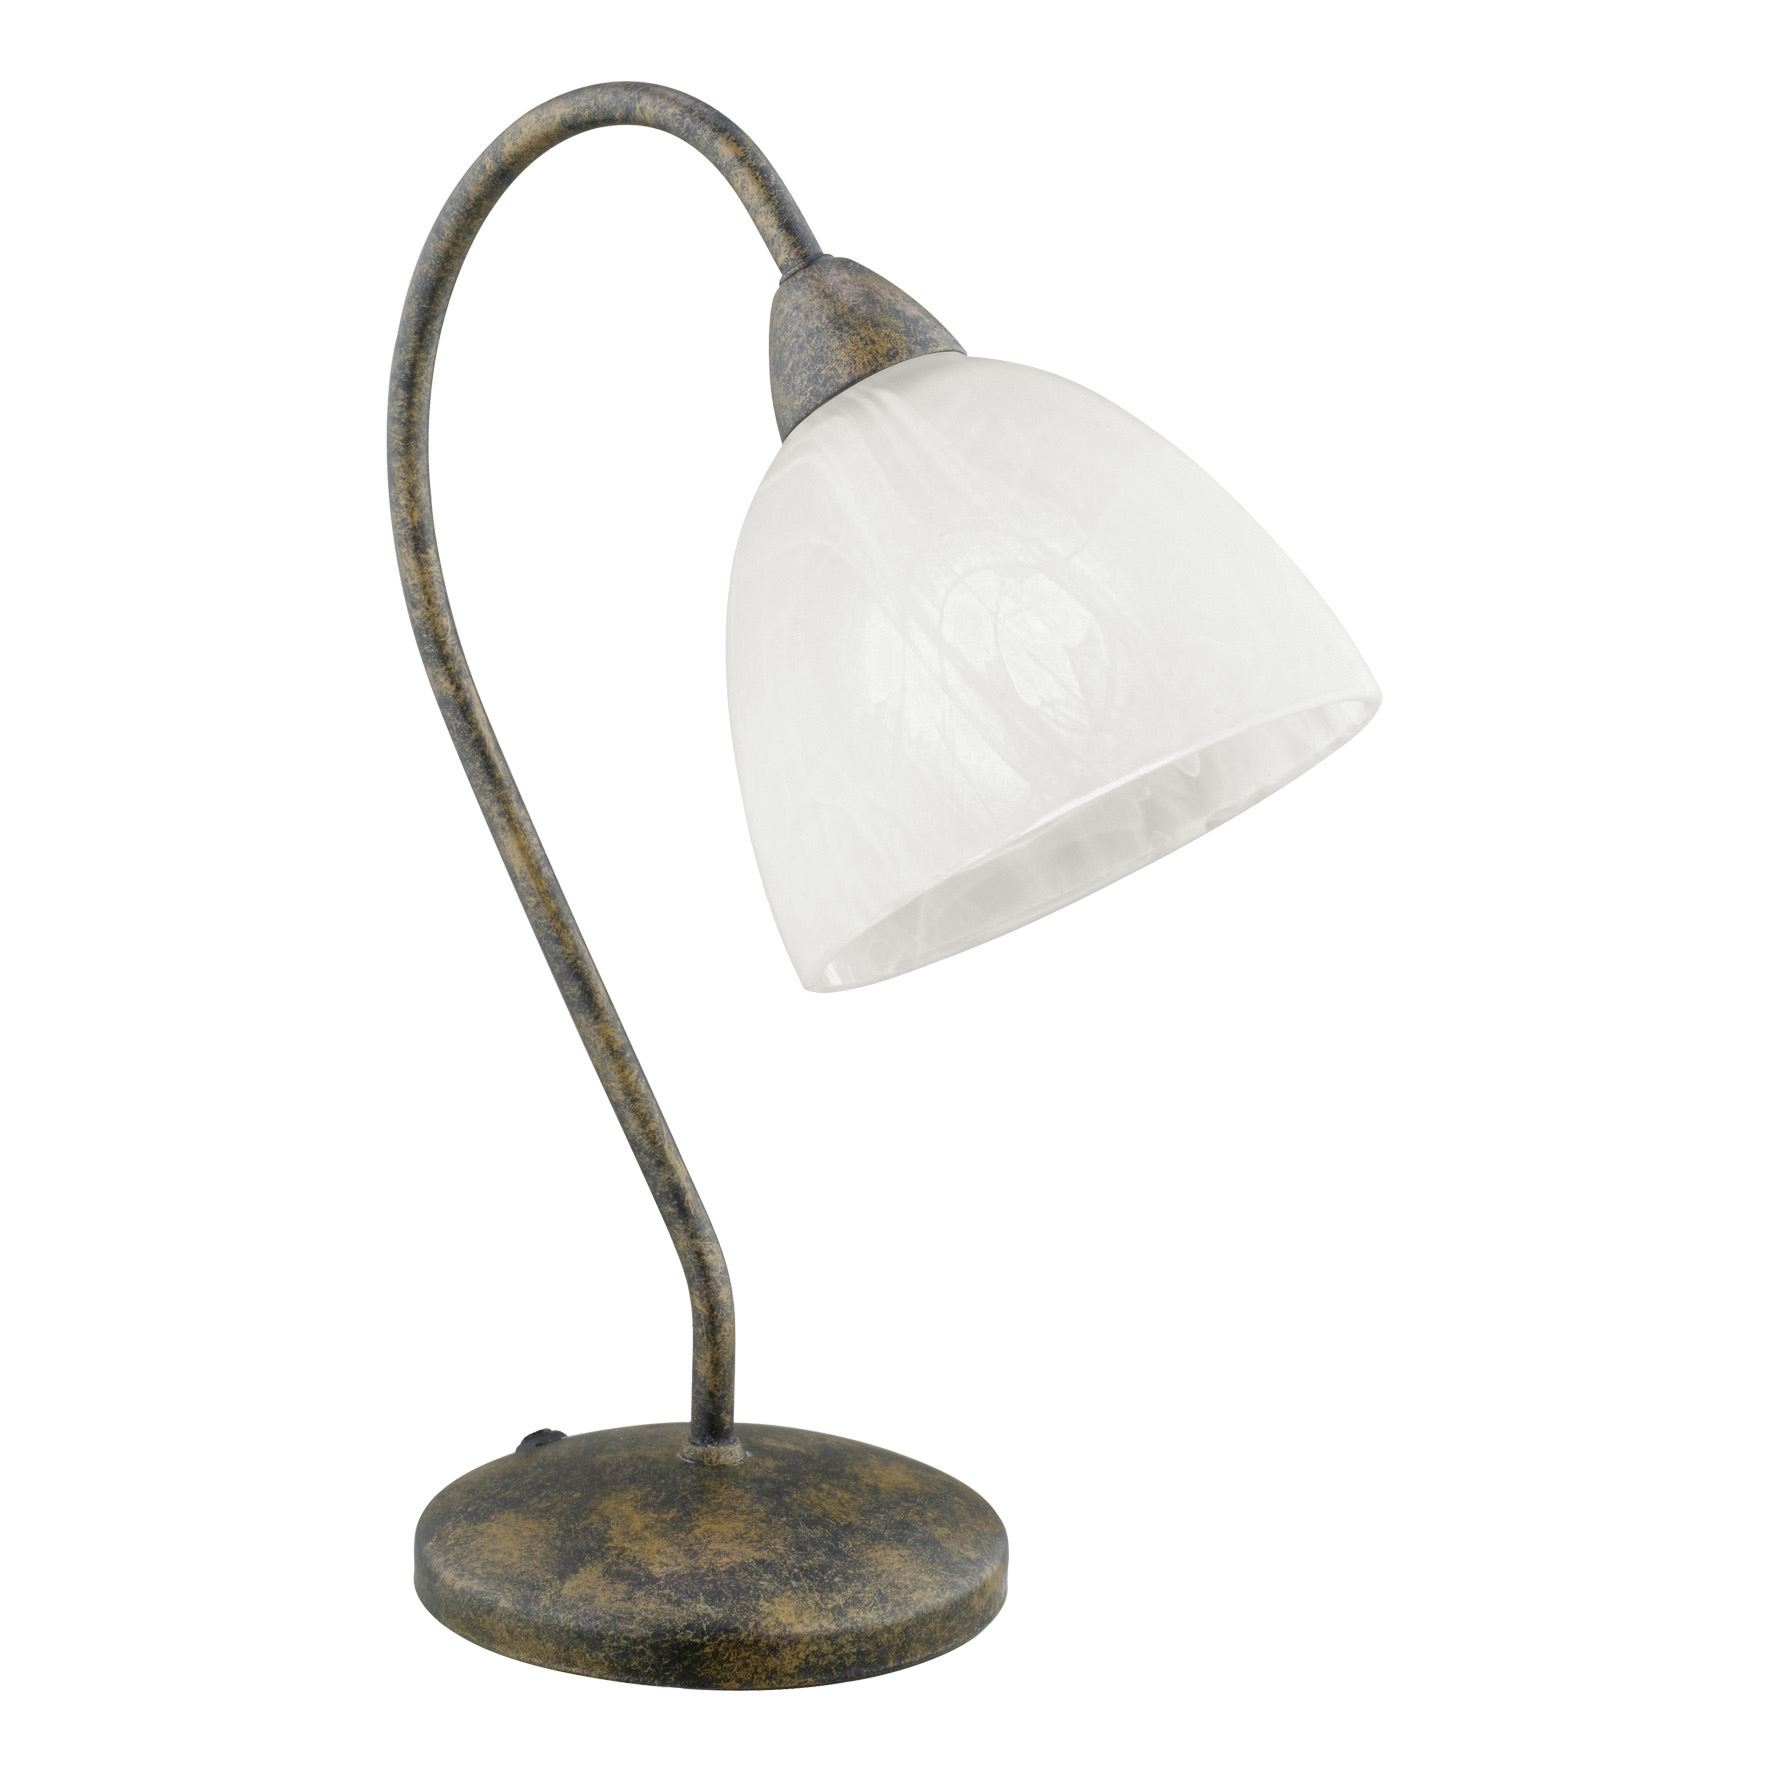 Dionis Traditional Steel Table Lamp 1 Light Rust-Colored